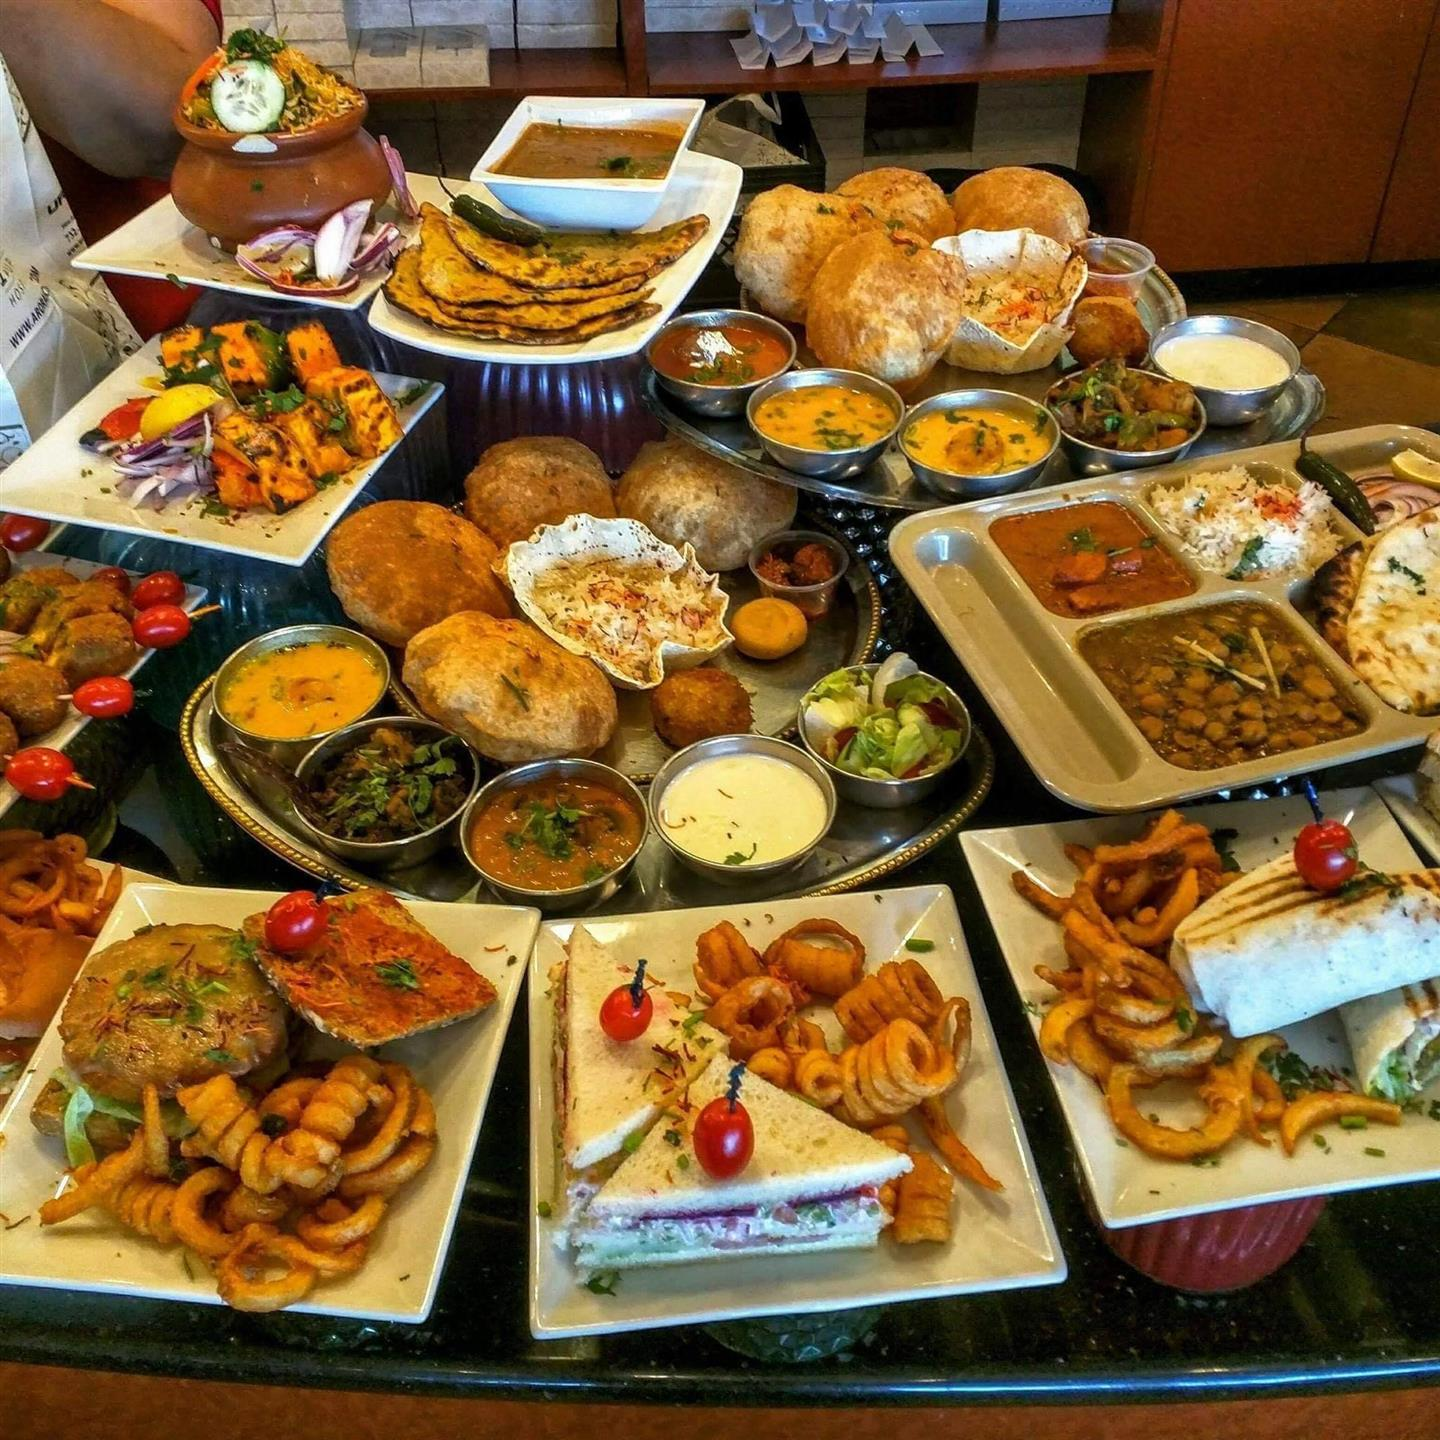 an assortment of dishes on a table